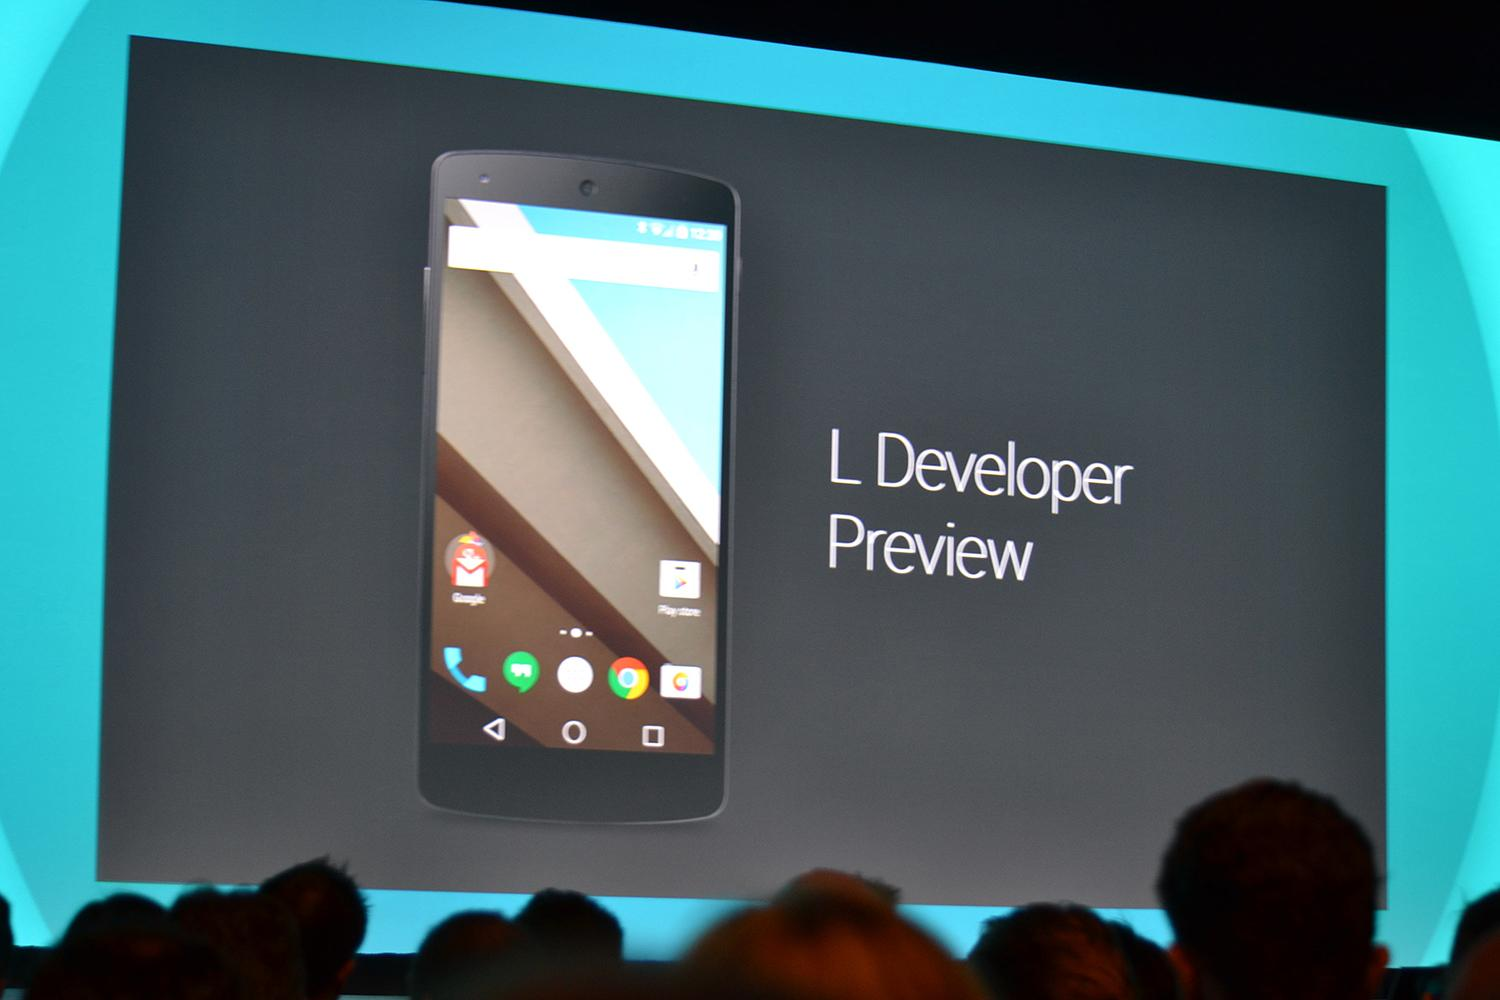 Android L Giving An Edge to the Android App Developers - Image 1